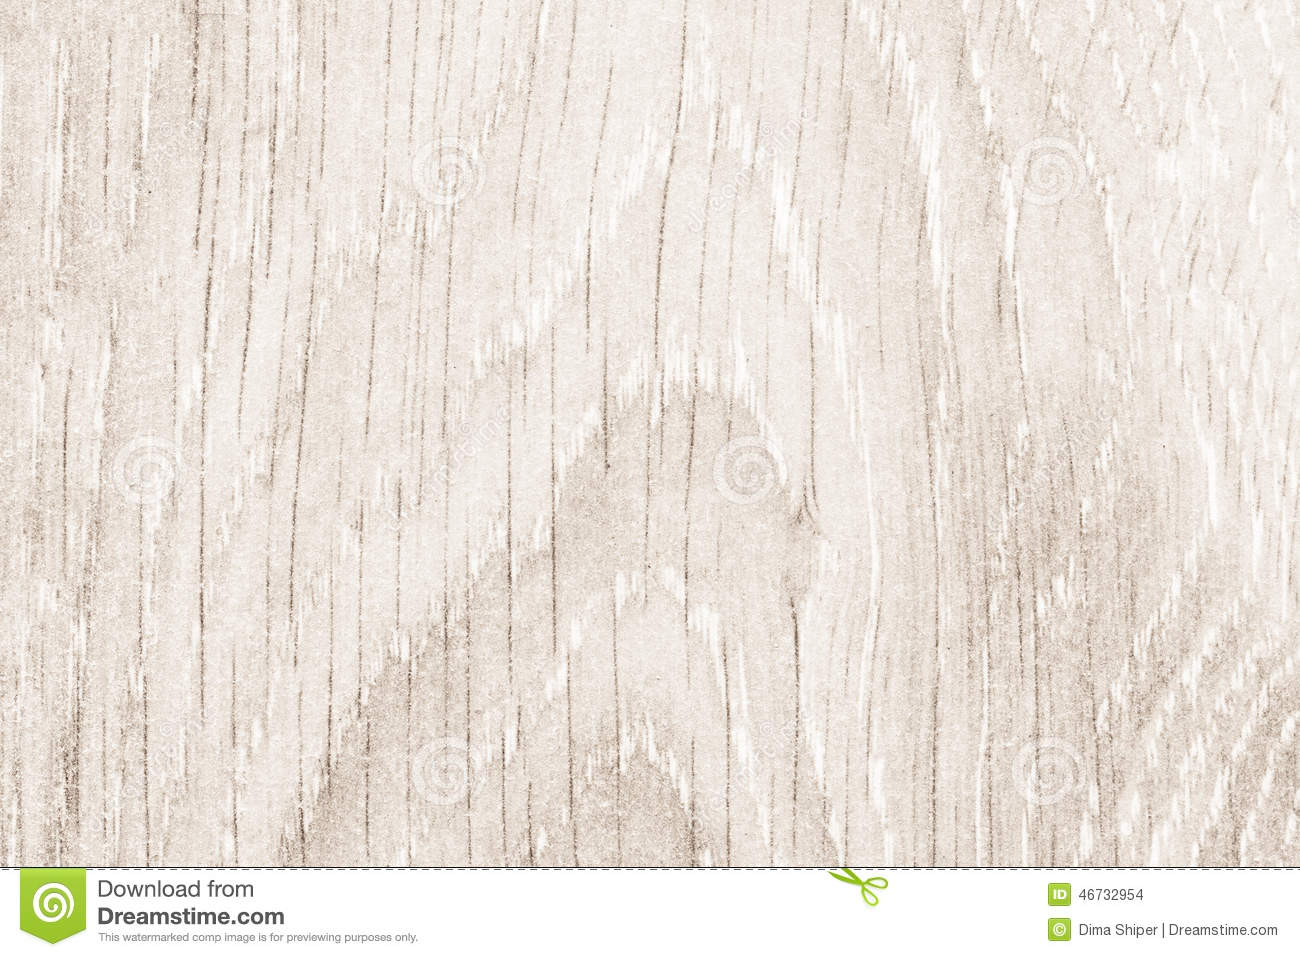 White wood table texture - Royalty Free Stock Photo Download Natural White Wood Texture Table